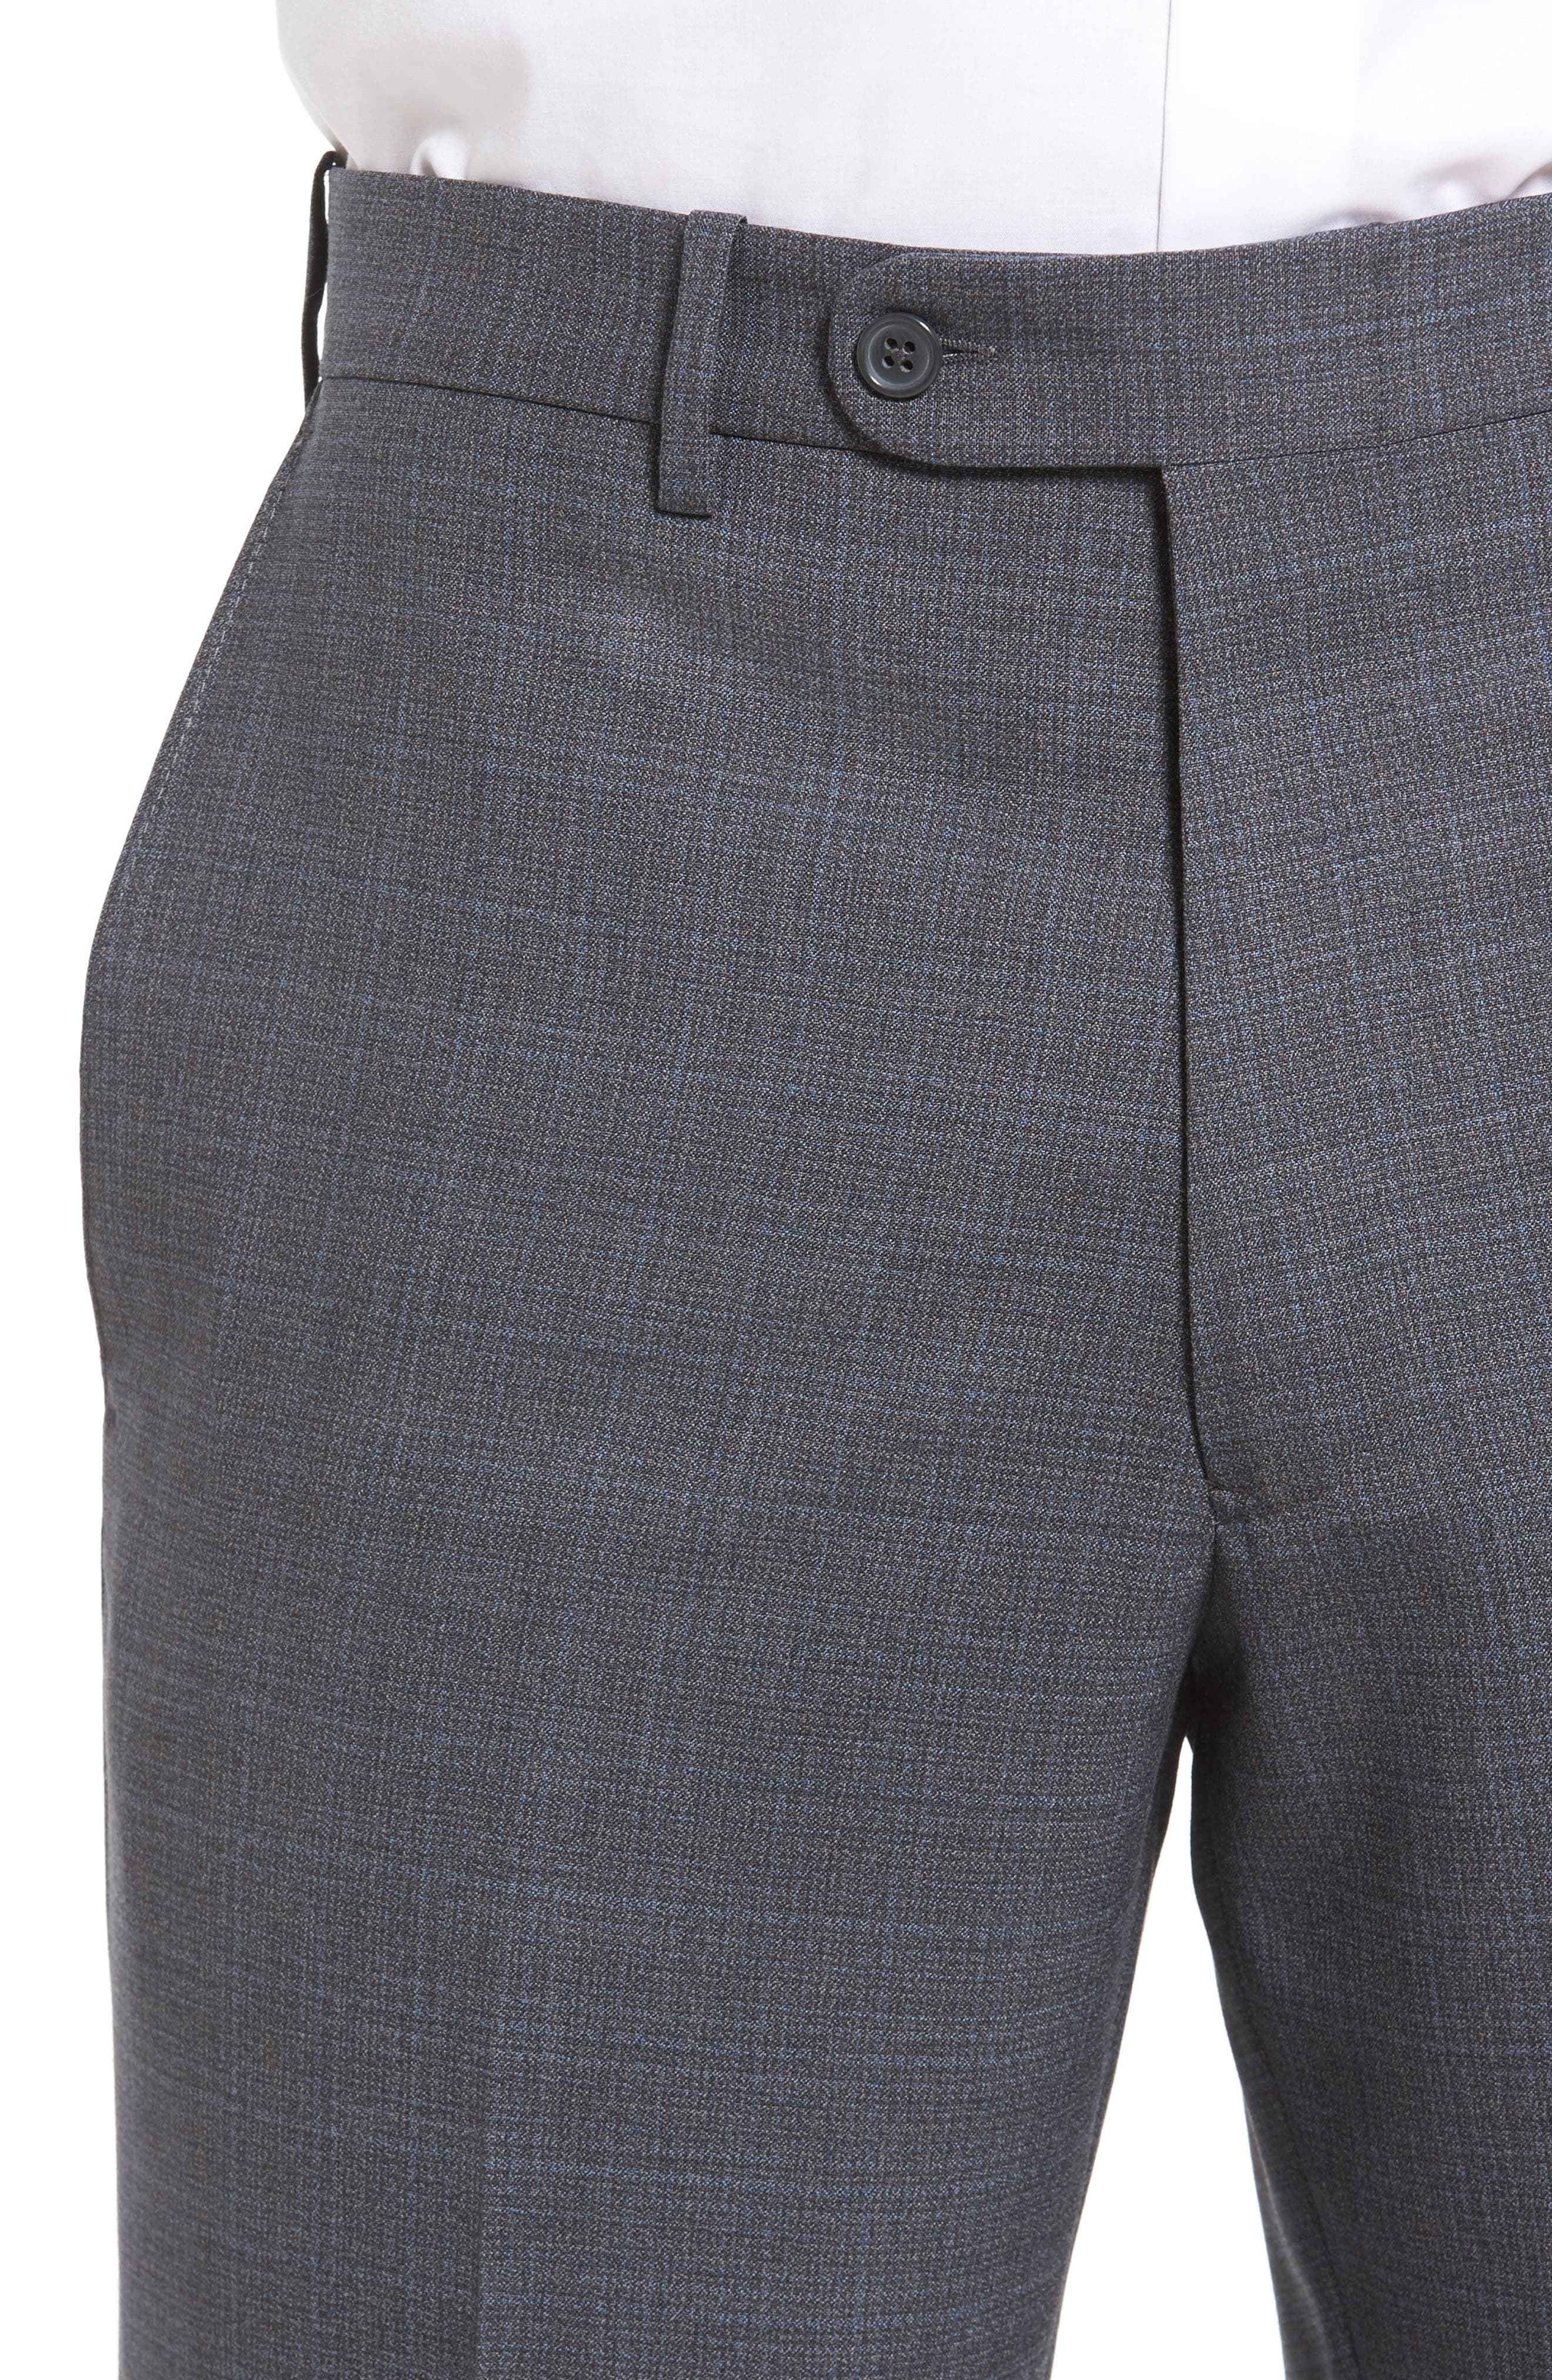 Flat Front Plaid Wool Trousers,                             Alternate thumbnail 14, color,